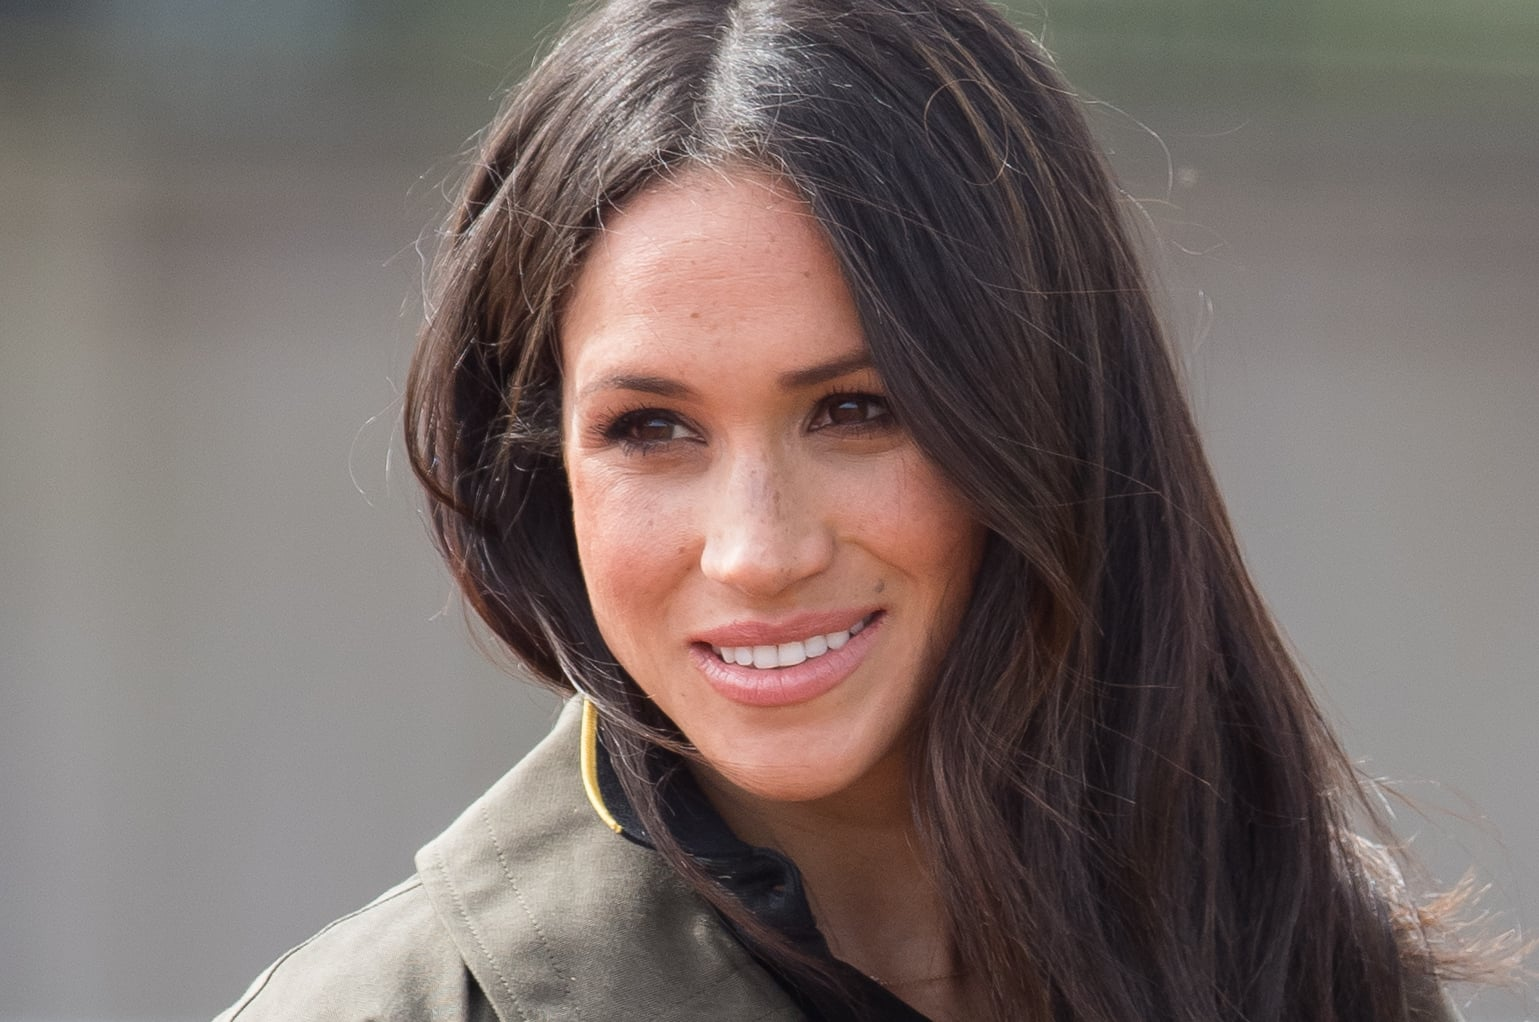 BATH, ENGLAND - APRIL 06:  Meghan Markle attends the UK Team Trials for the Invictus Games Sydney 2018 at University of Bath on April 6, 2018 in Bath, England.  (Photo by Samir Hussein/WireImage)